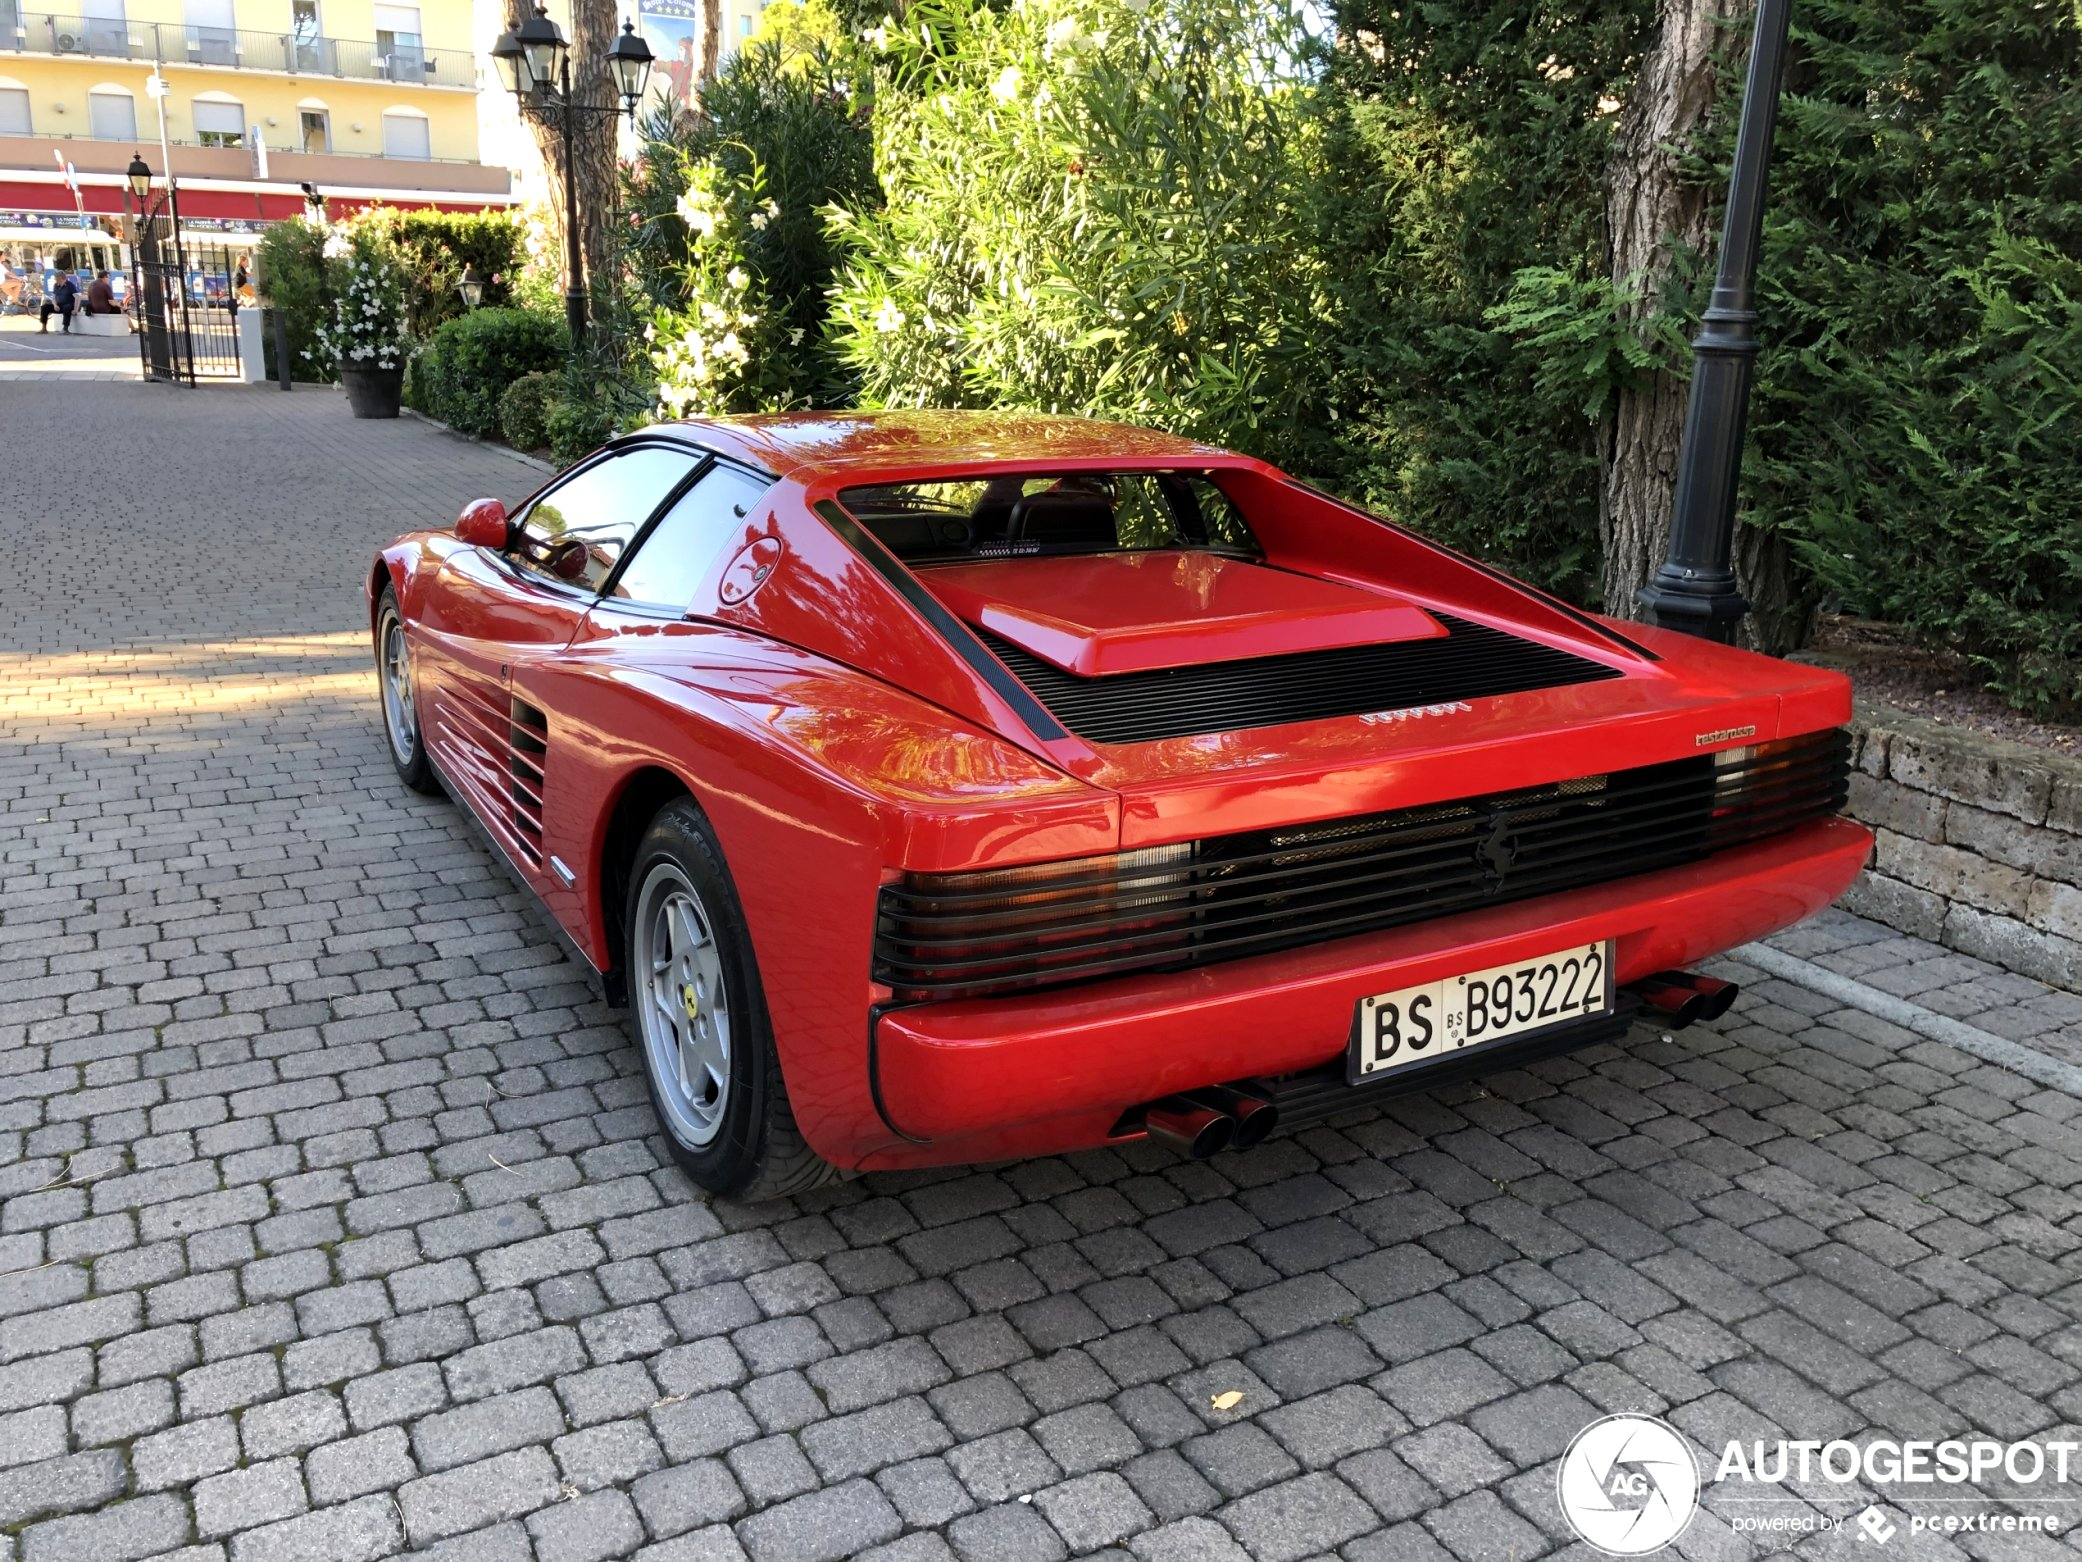 2020 ferrari testarossa Review